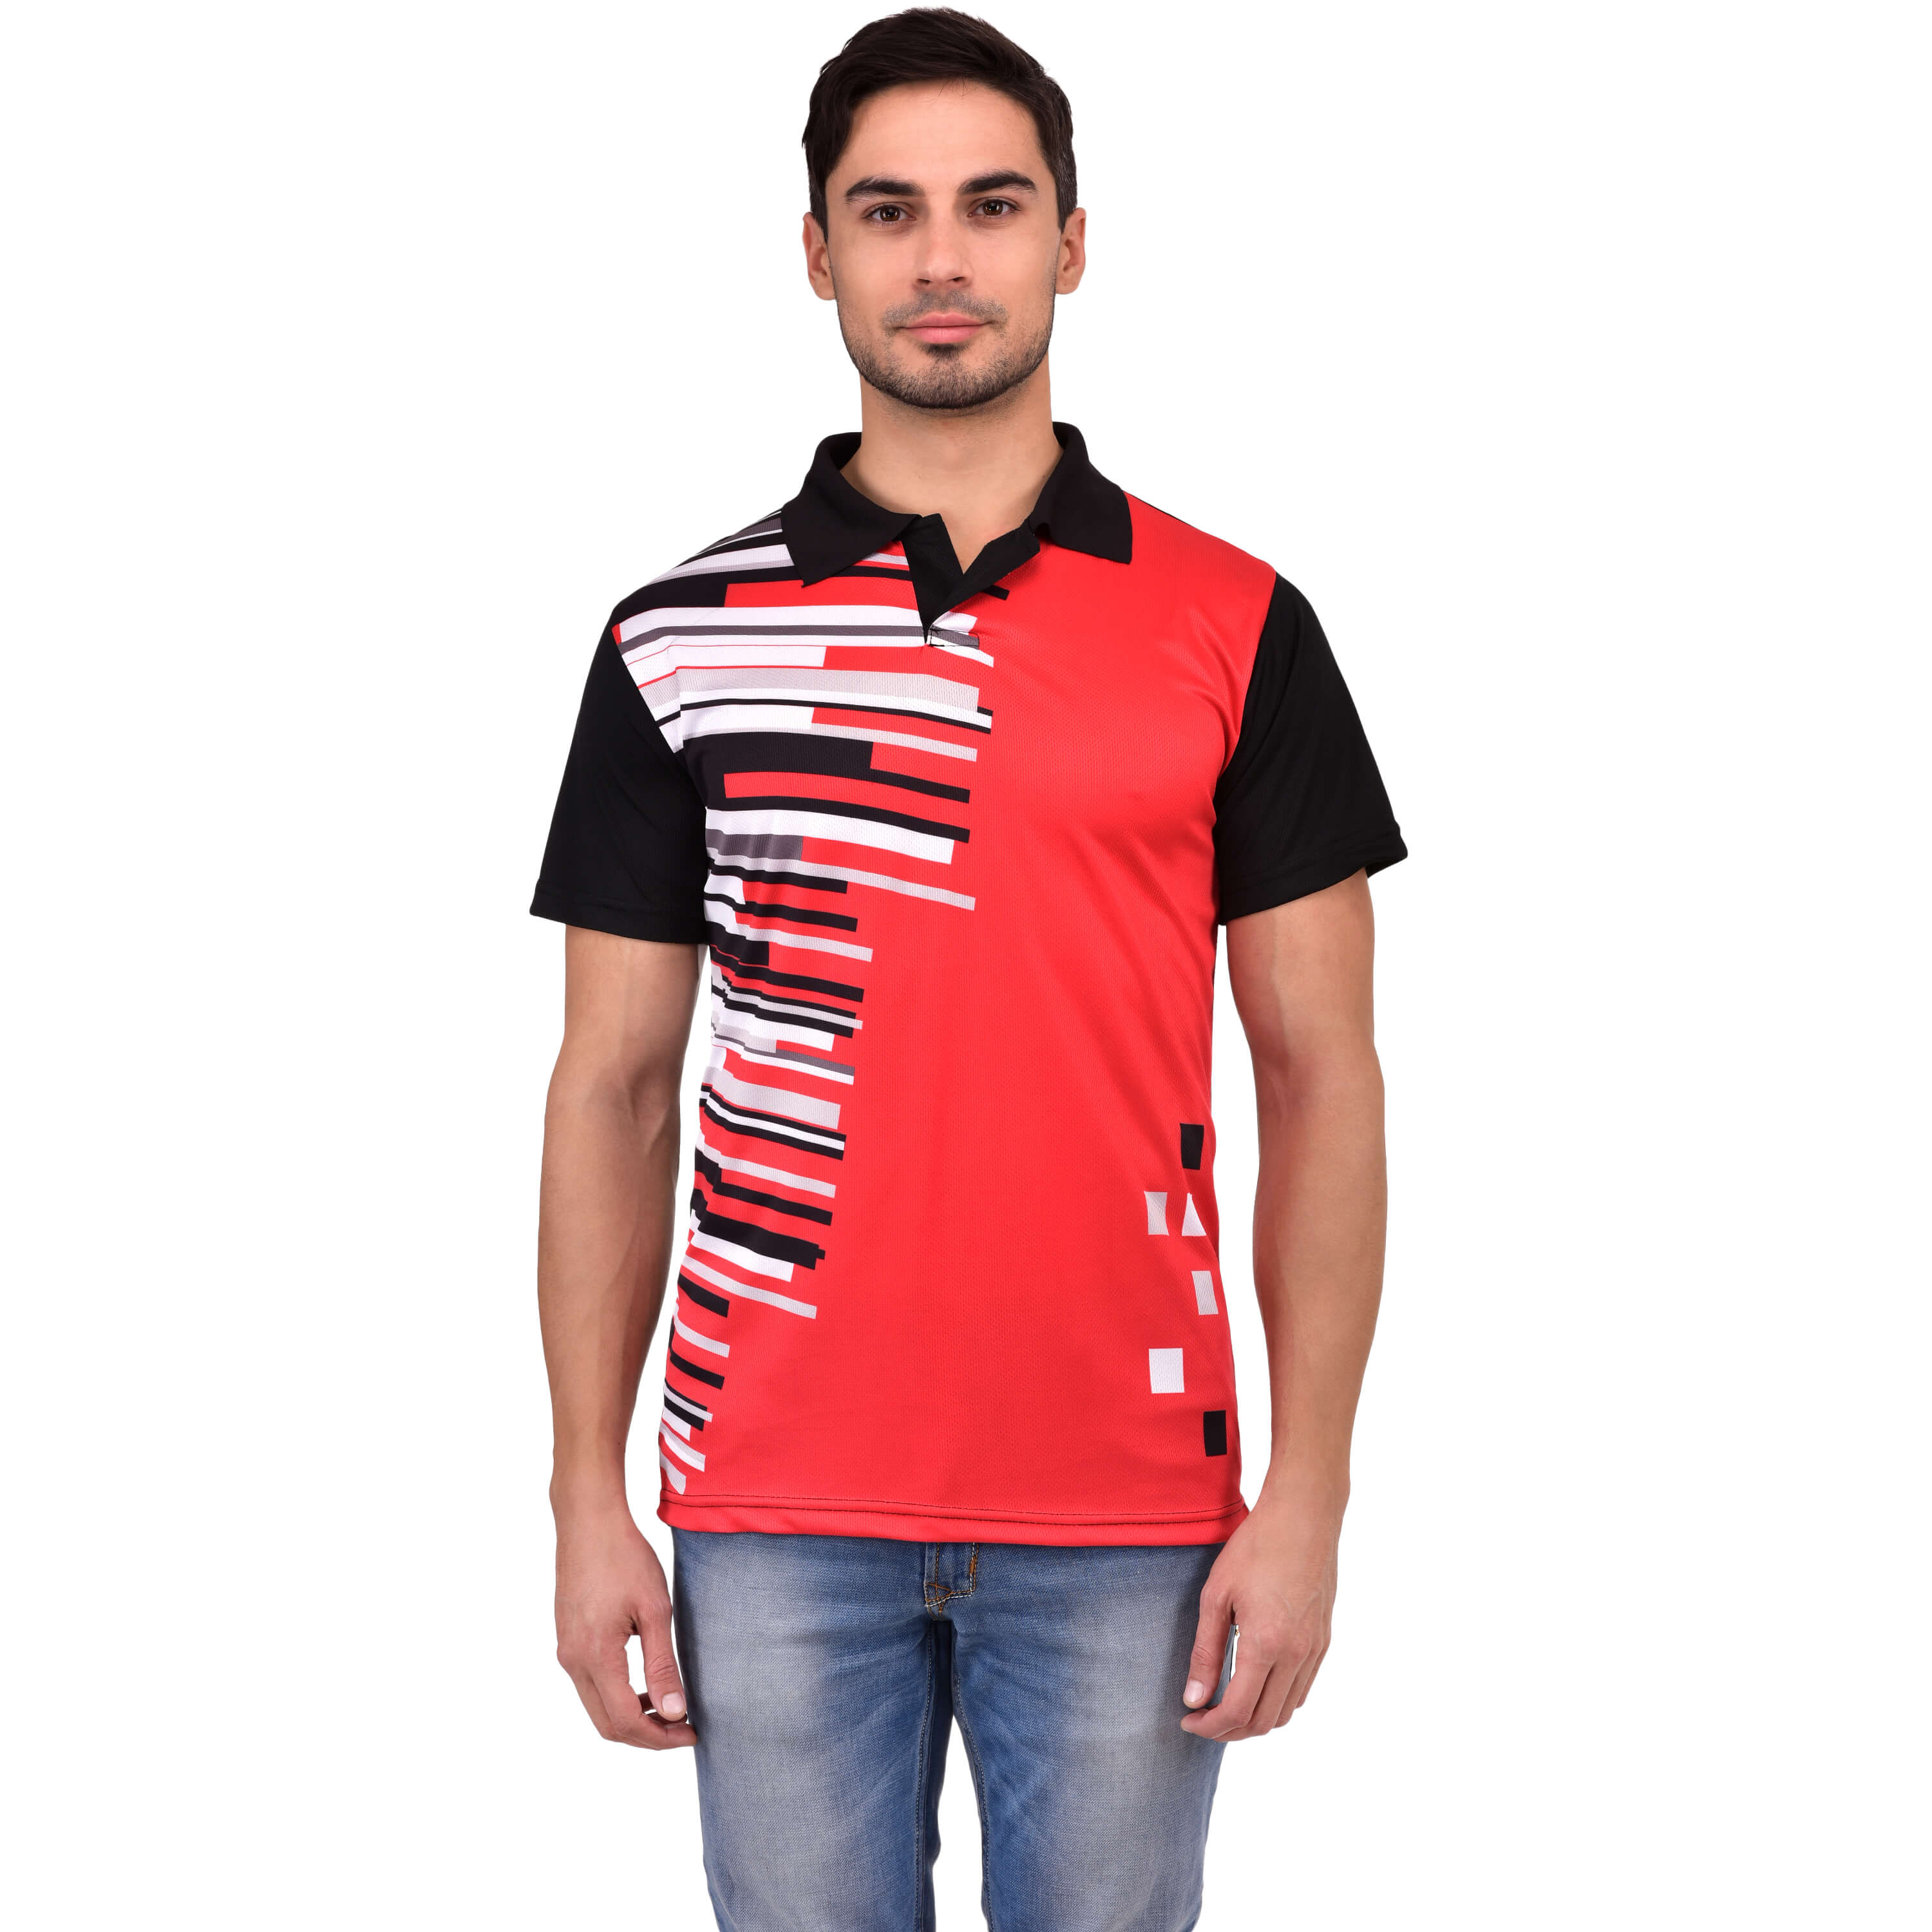 Football Jerseys Manufacturers, Wholesale Suppliers